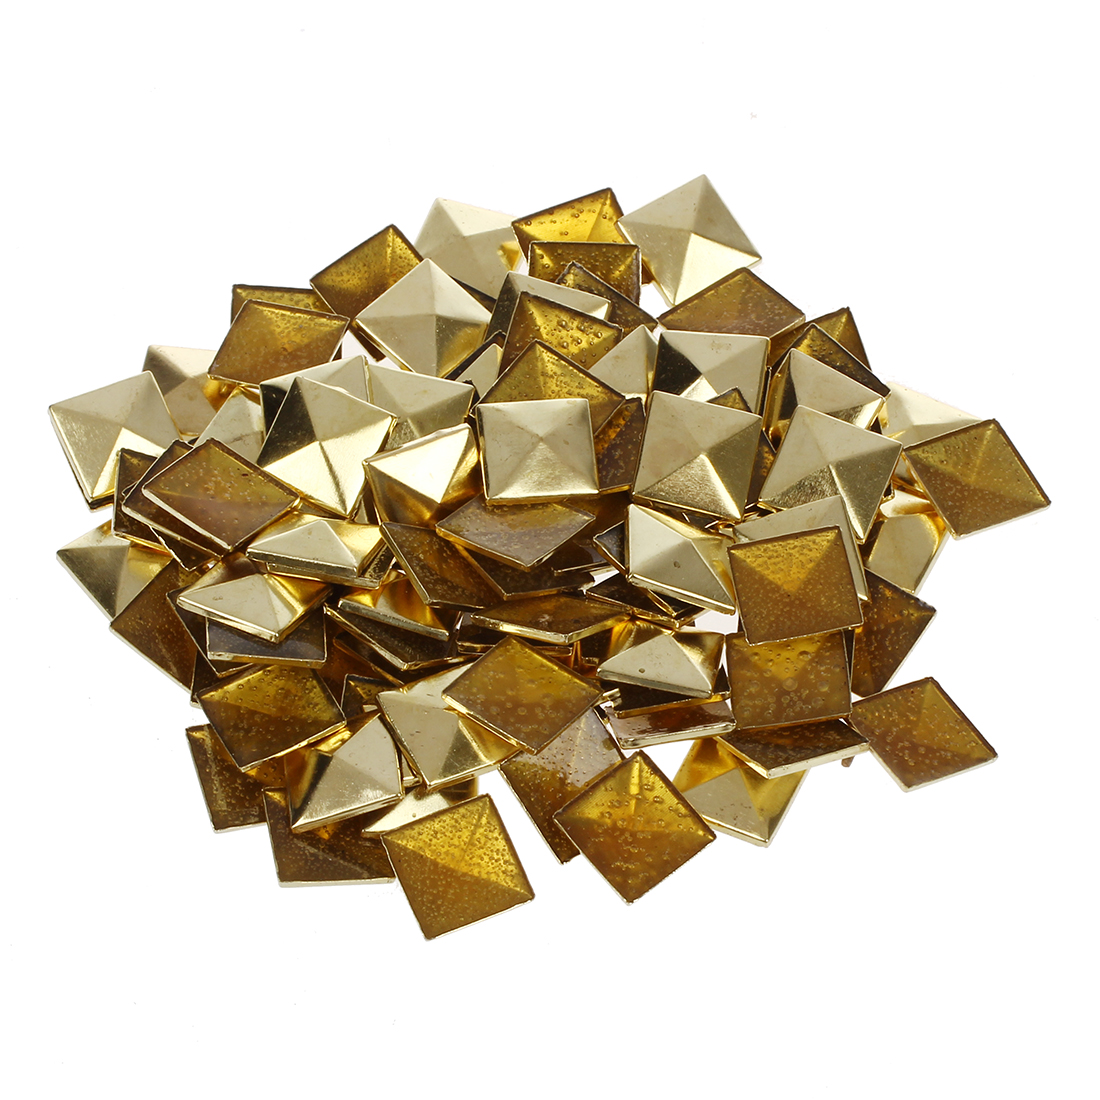 Pcs 10mm Diy Punk Style Pyramid Studs Nailheads Gold Group